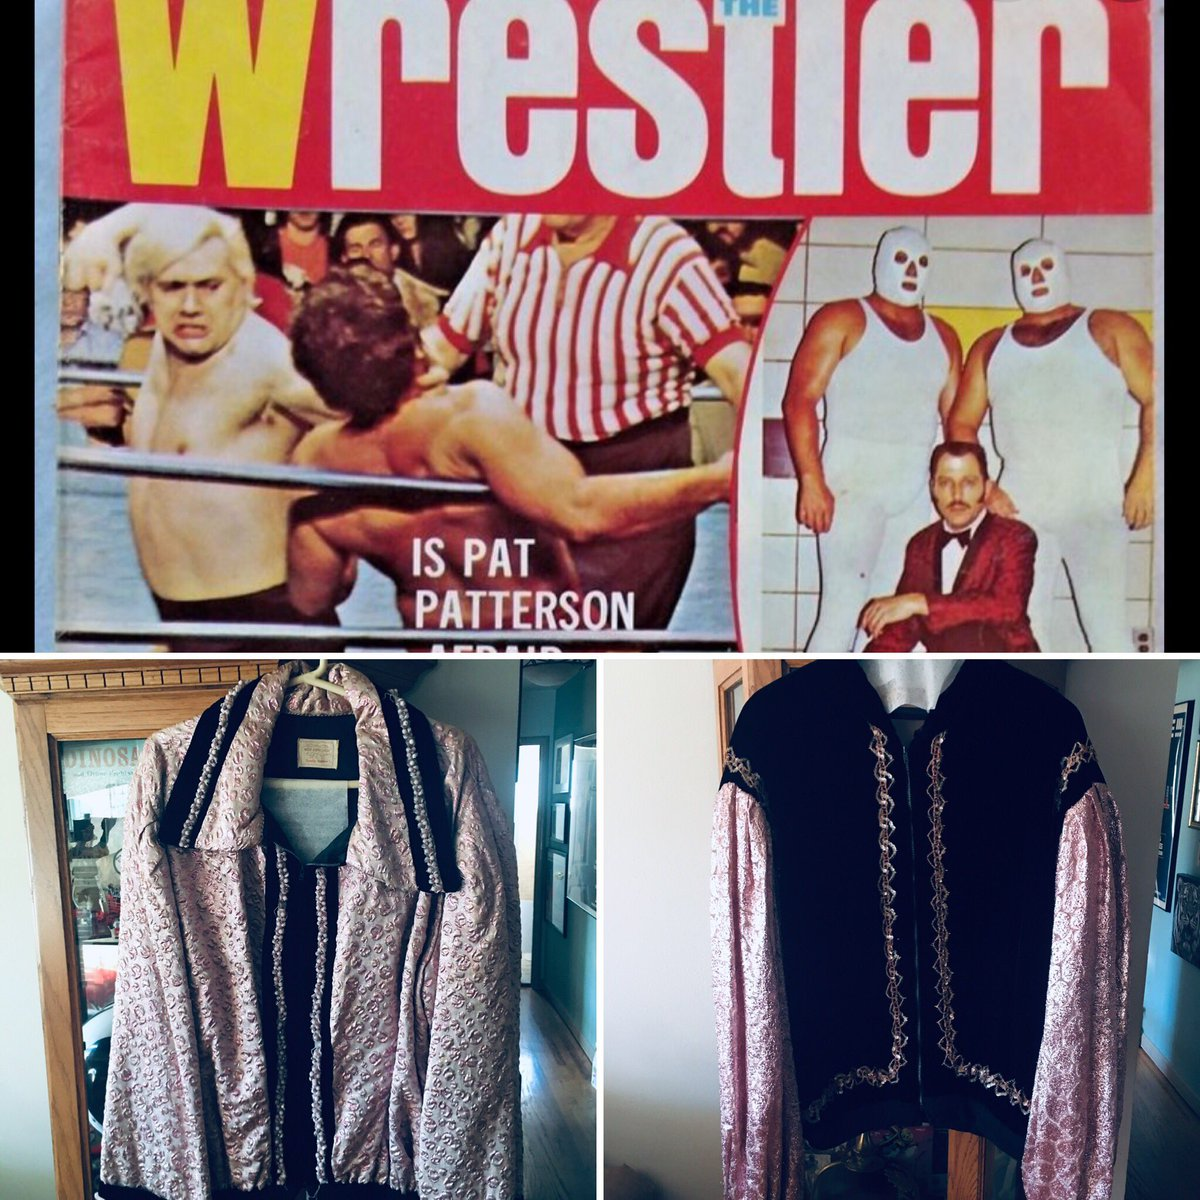 Remembering pro wrestling legend &  HOF member Pat Patterson & 2 of his ring worn jackets. For info on my dad's old school pro wrestling photos book When I Shot Good & Bad Guys who wrestled @ the Cow Palace send me a pm #PatPatterson #cowpalace #royshire #raystevens #rockyjohnson